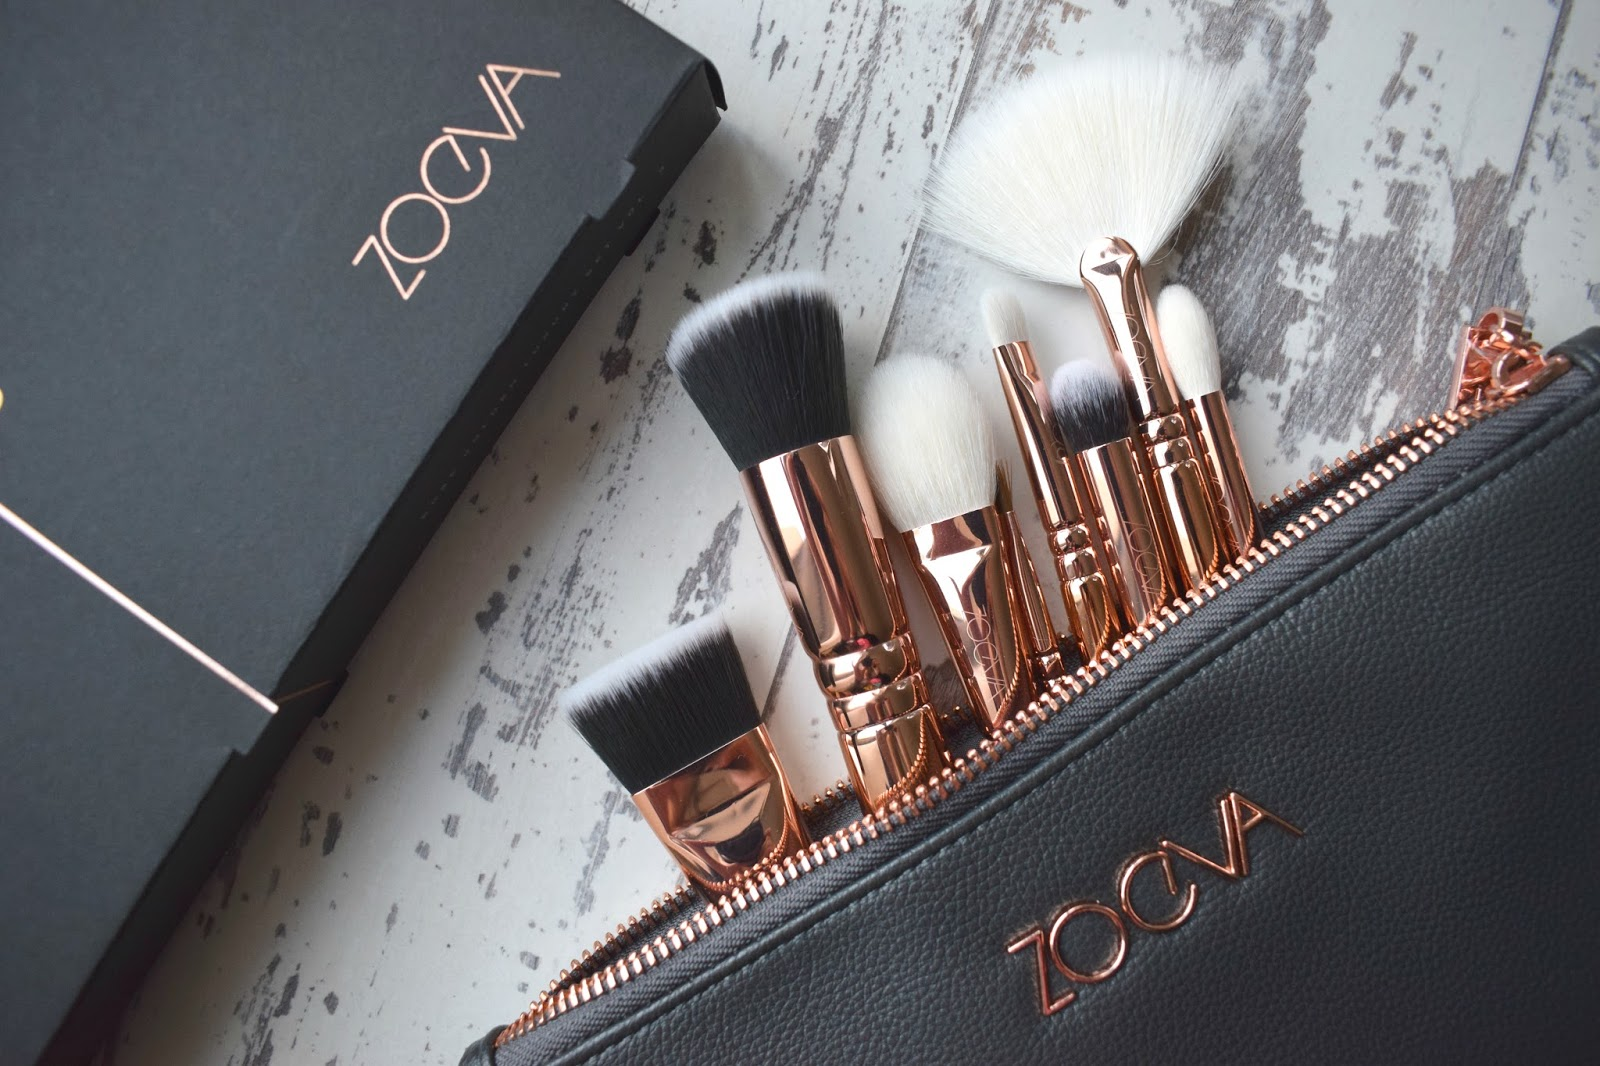 Zoeva Rose Golden Volume Vol 3 Brush Set Collection, Zoeva Rose Gold Vol. 3 Review, Beauty Blog